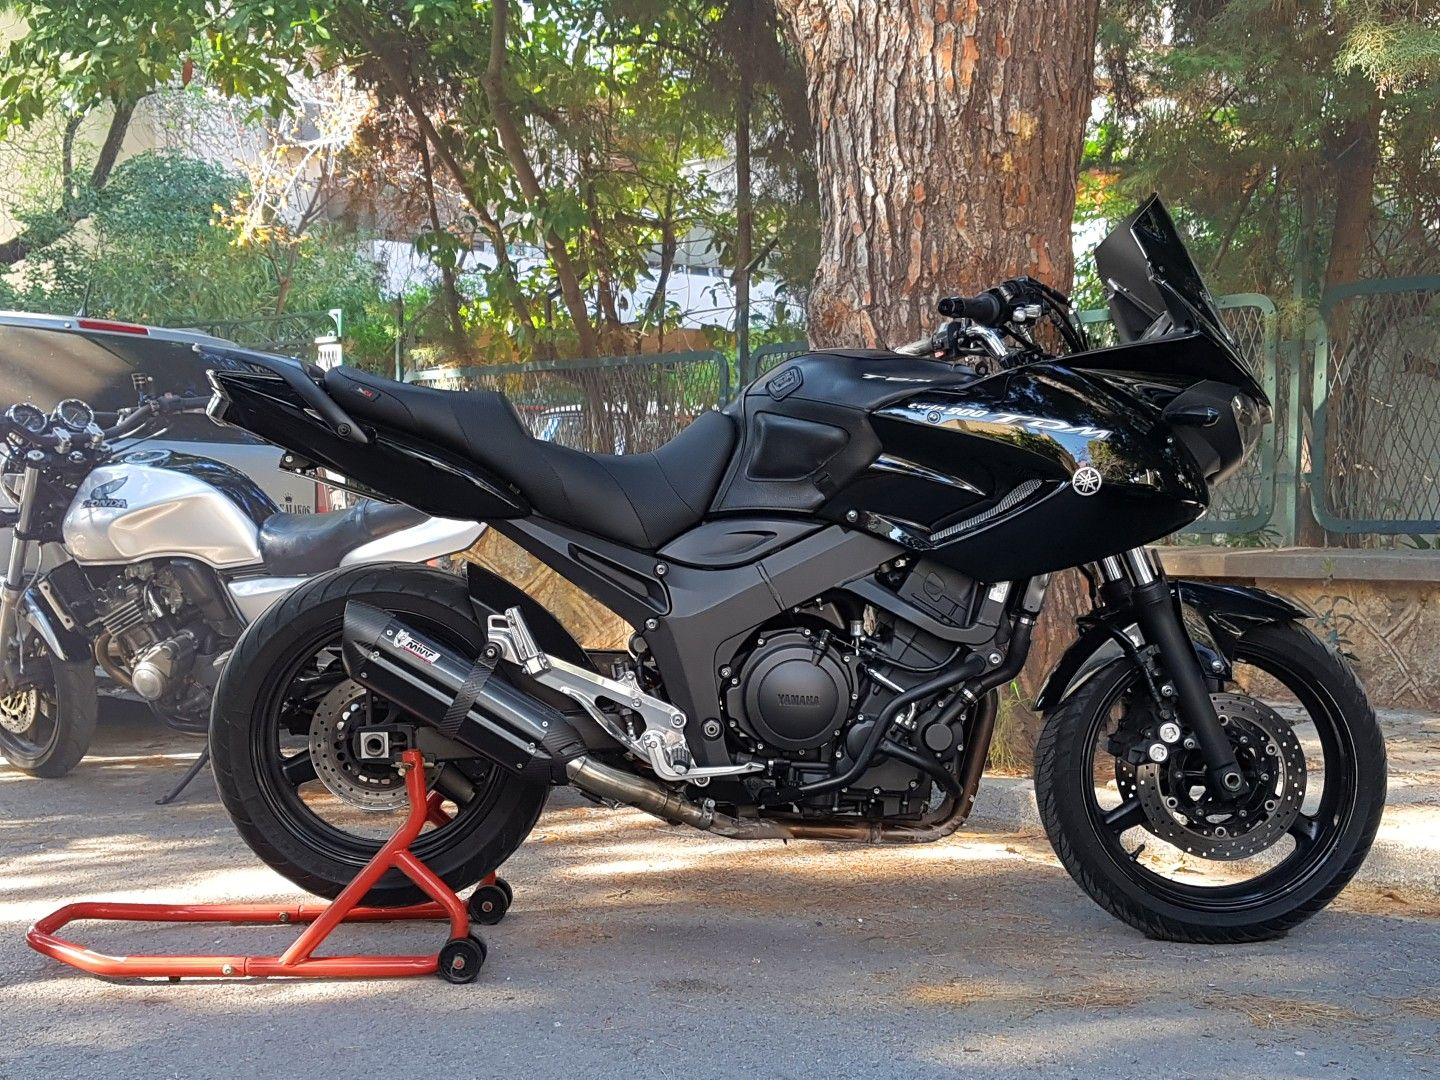 Yamaha Tdm 900 Thehook Black When In Doubt Throttle It Out Totalblack Moto Yamaha Tdm 900 The Hook Motorcycle Yamaha Cars And Motorcycles